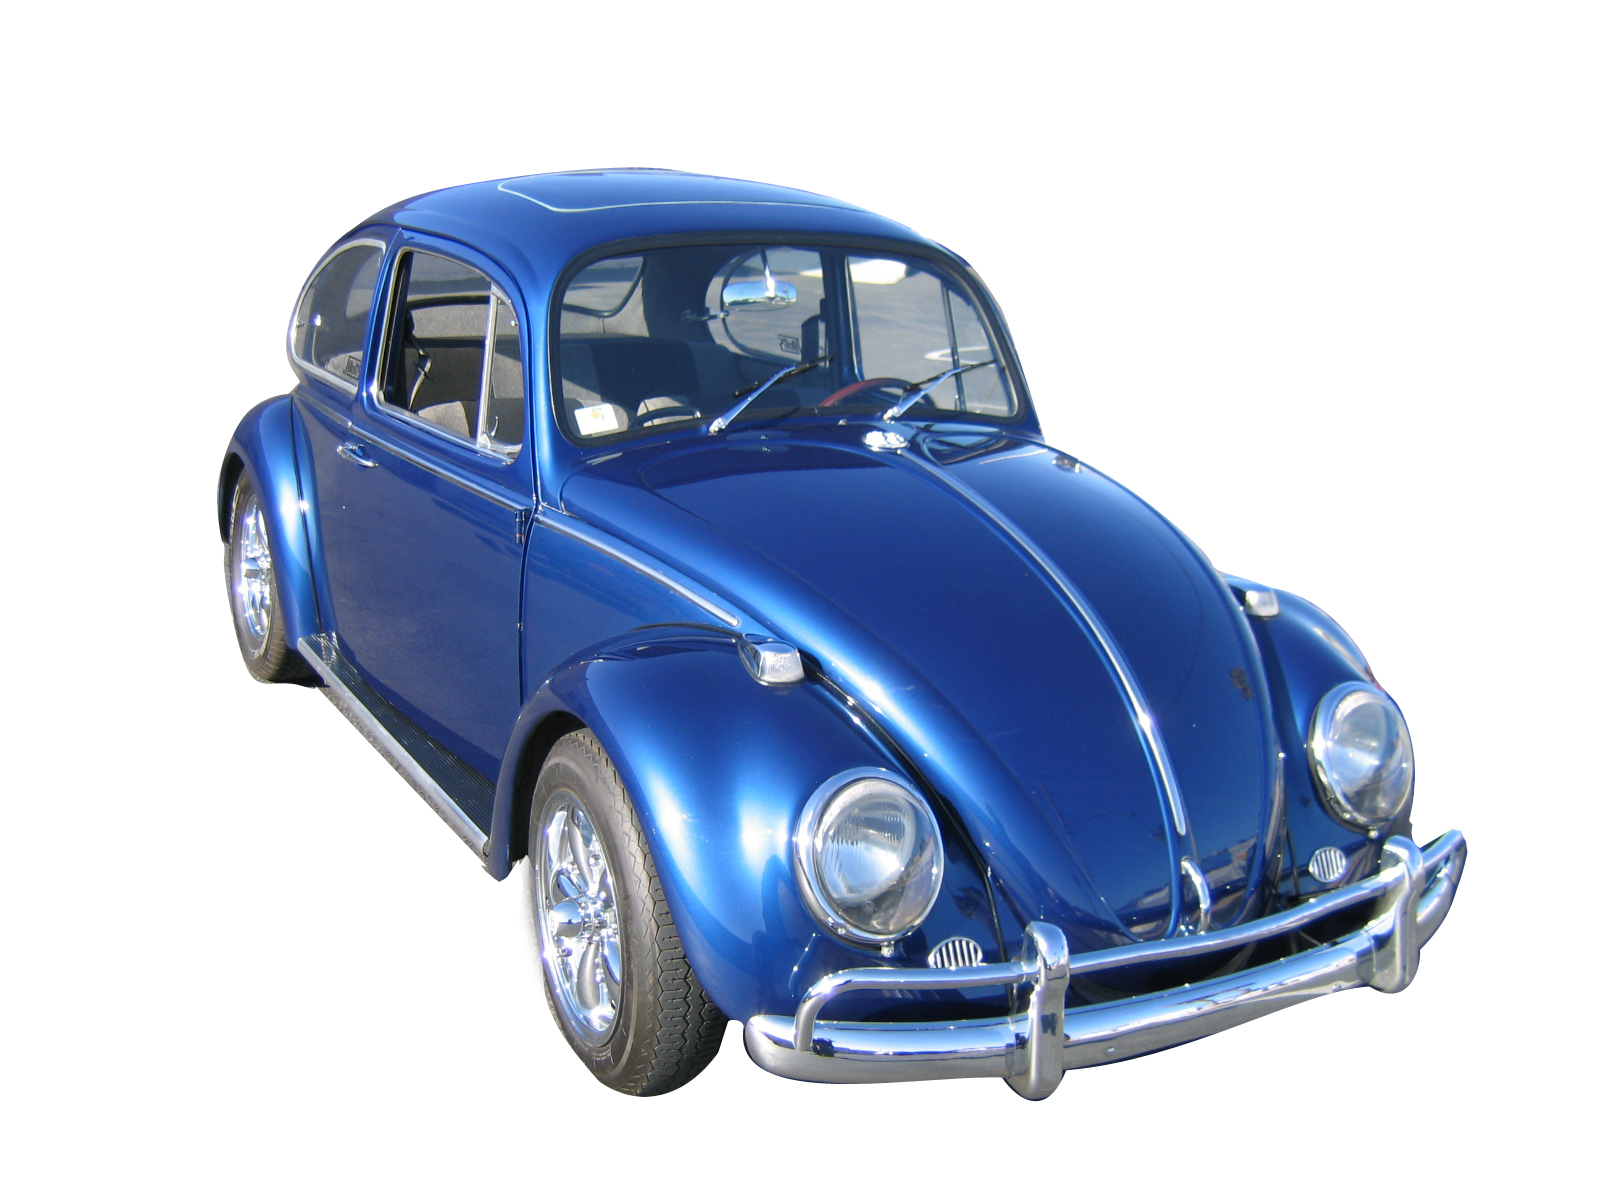 Vw Parts Jbugs Com Vw Beetle Parts